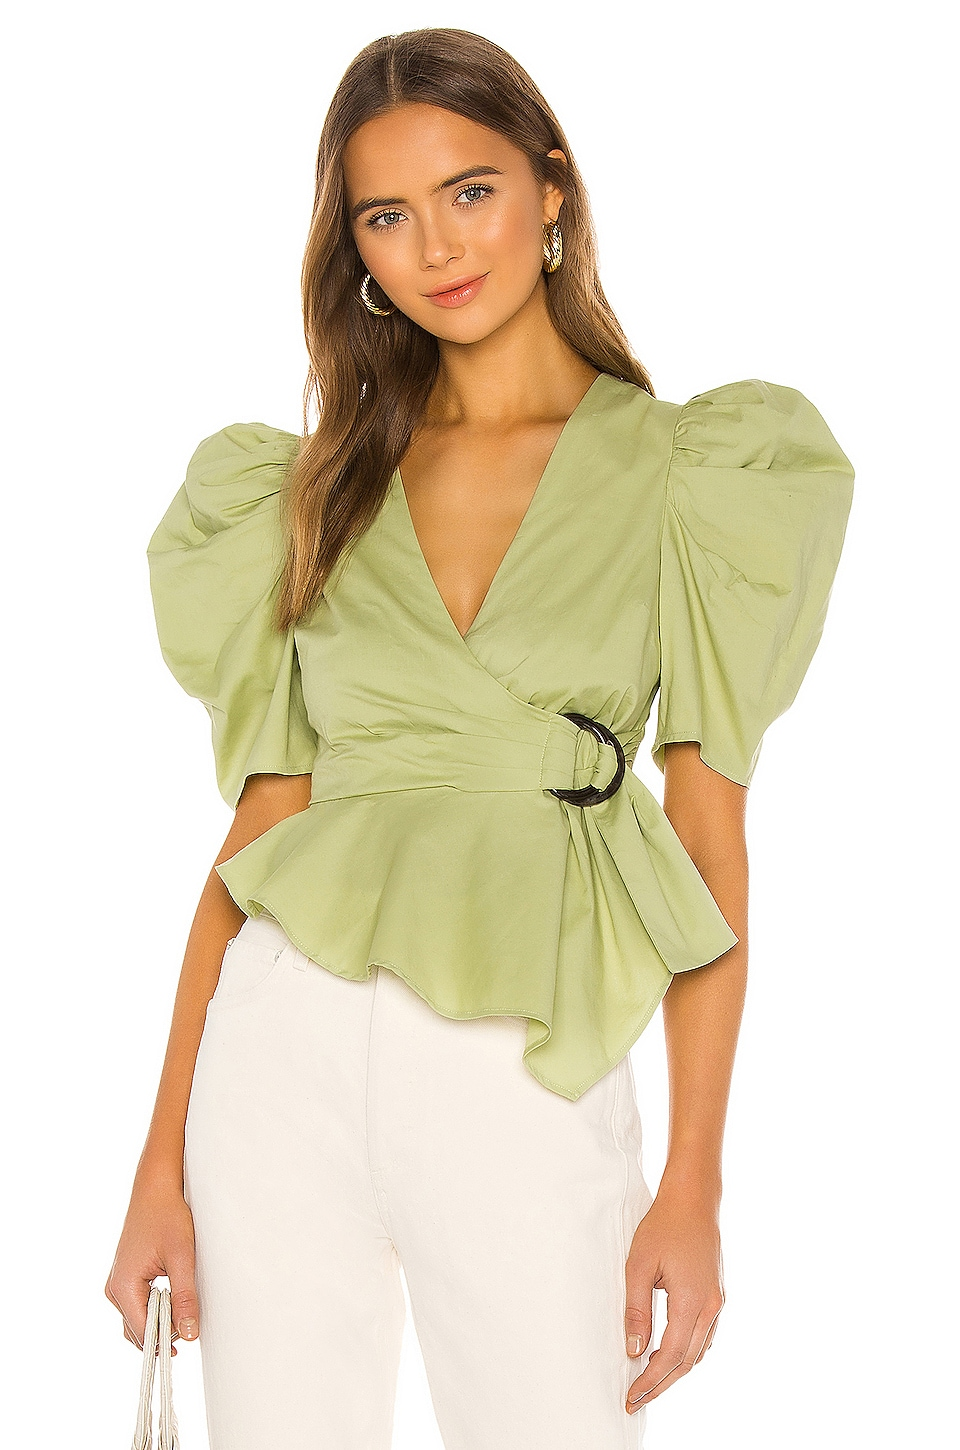 House of Harlow 1960 x REVOLVE Jurie Top en Pistachio